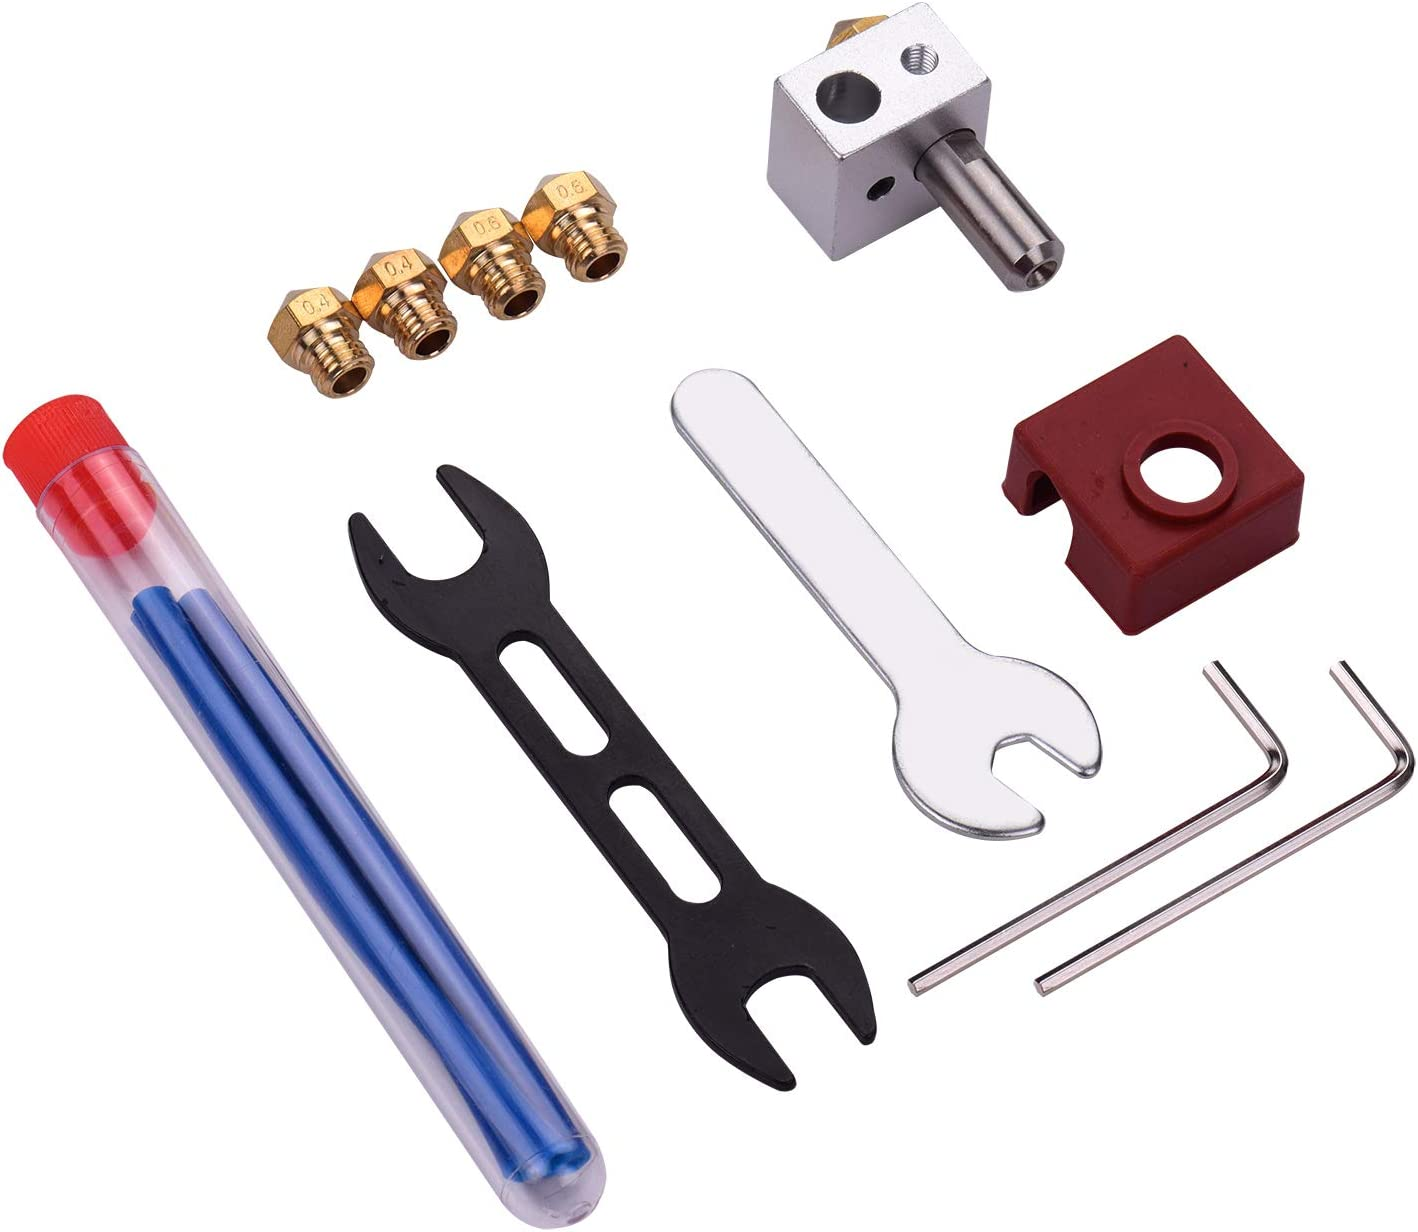 MK10 Hotend Kit Extruder Set with Heat Block Brass Nozzle Throat Tube PTFE Tube Silicone Sock Compatible with FlashForge Creator Pro Creator X Dreamer Finder Fesjoy for 3D Printer Mk10 Hotend Kit